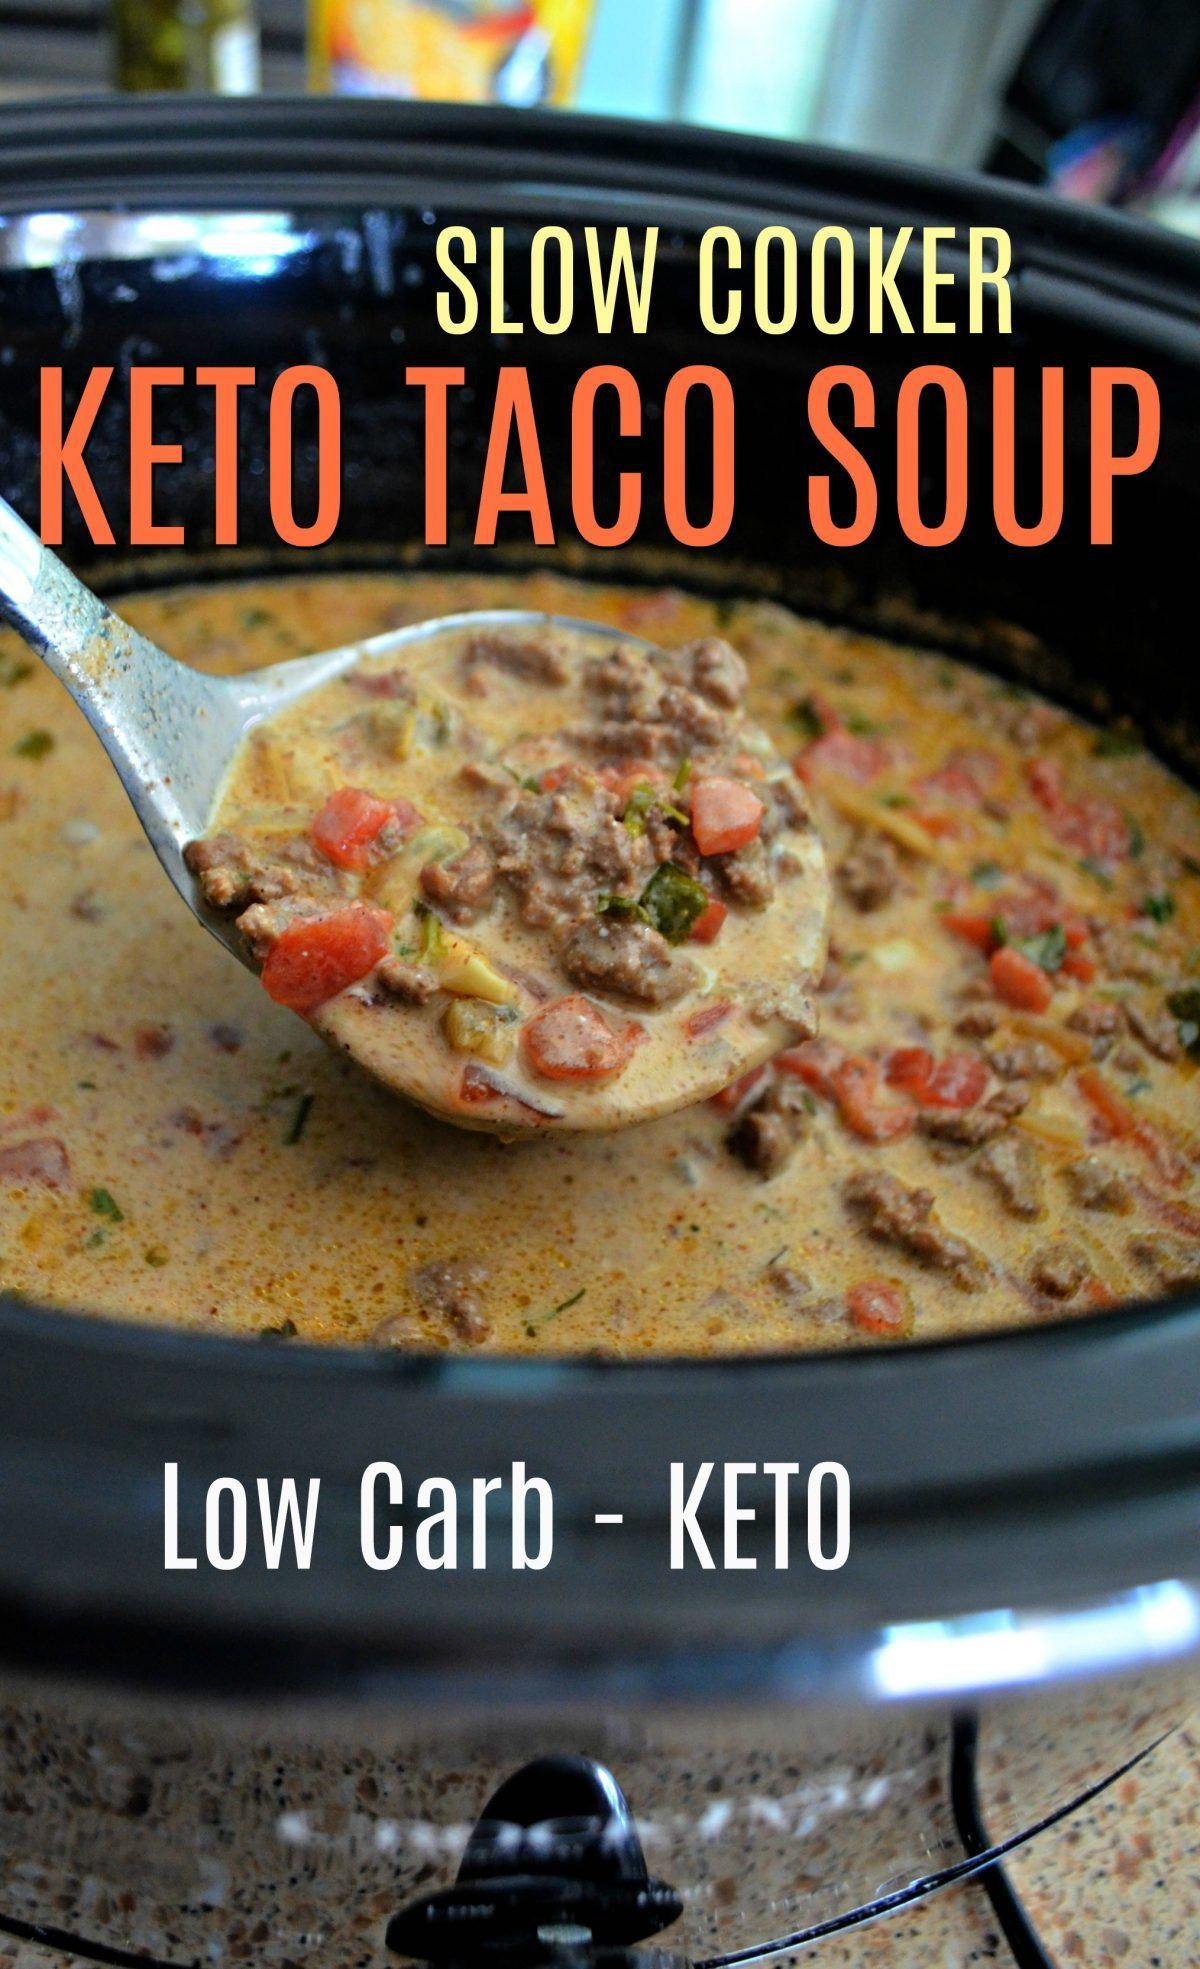 Slow Cooker Keto Taco Soup  Make the BEST Keto Taco Soup in Your Slow Cooker or